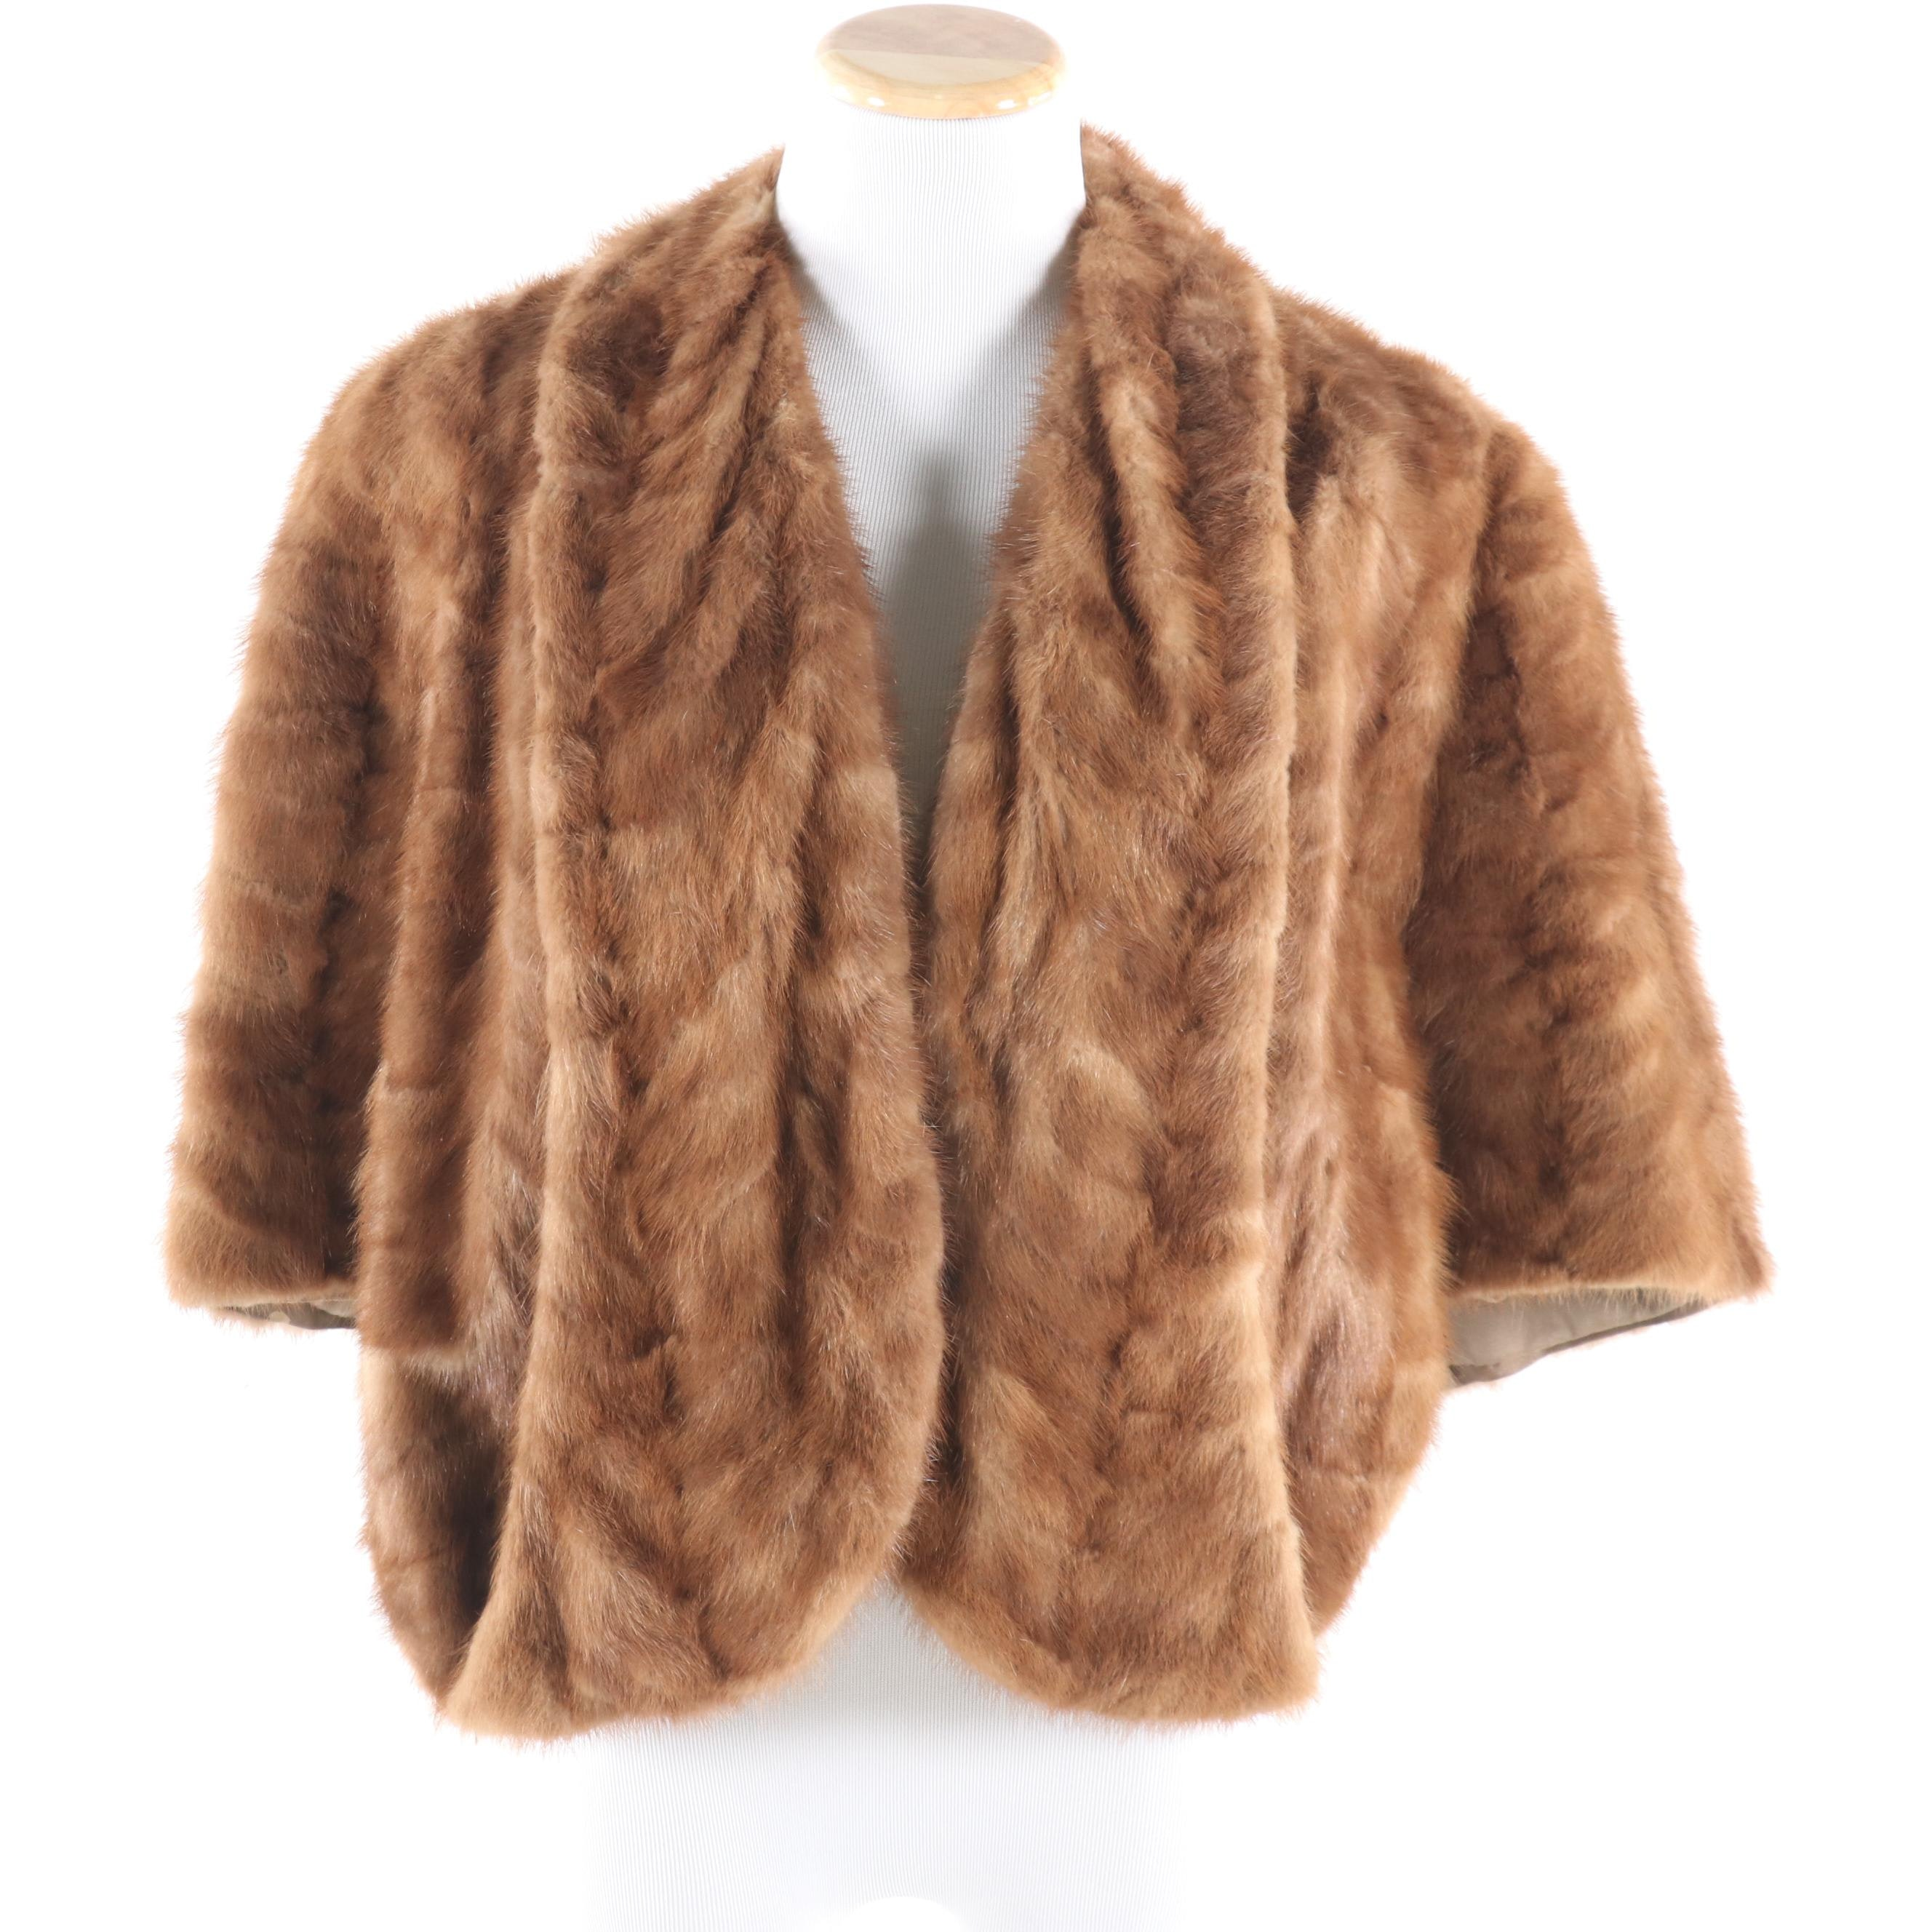 Natural Mink Paw Fur Capelet by Fulginiti's Brockton, Mid-20th Century